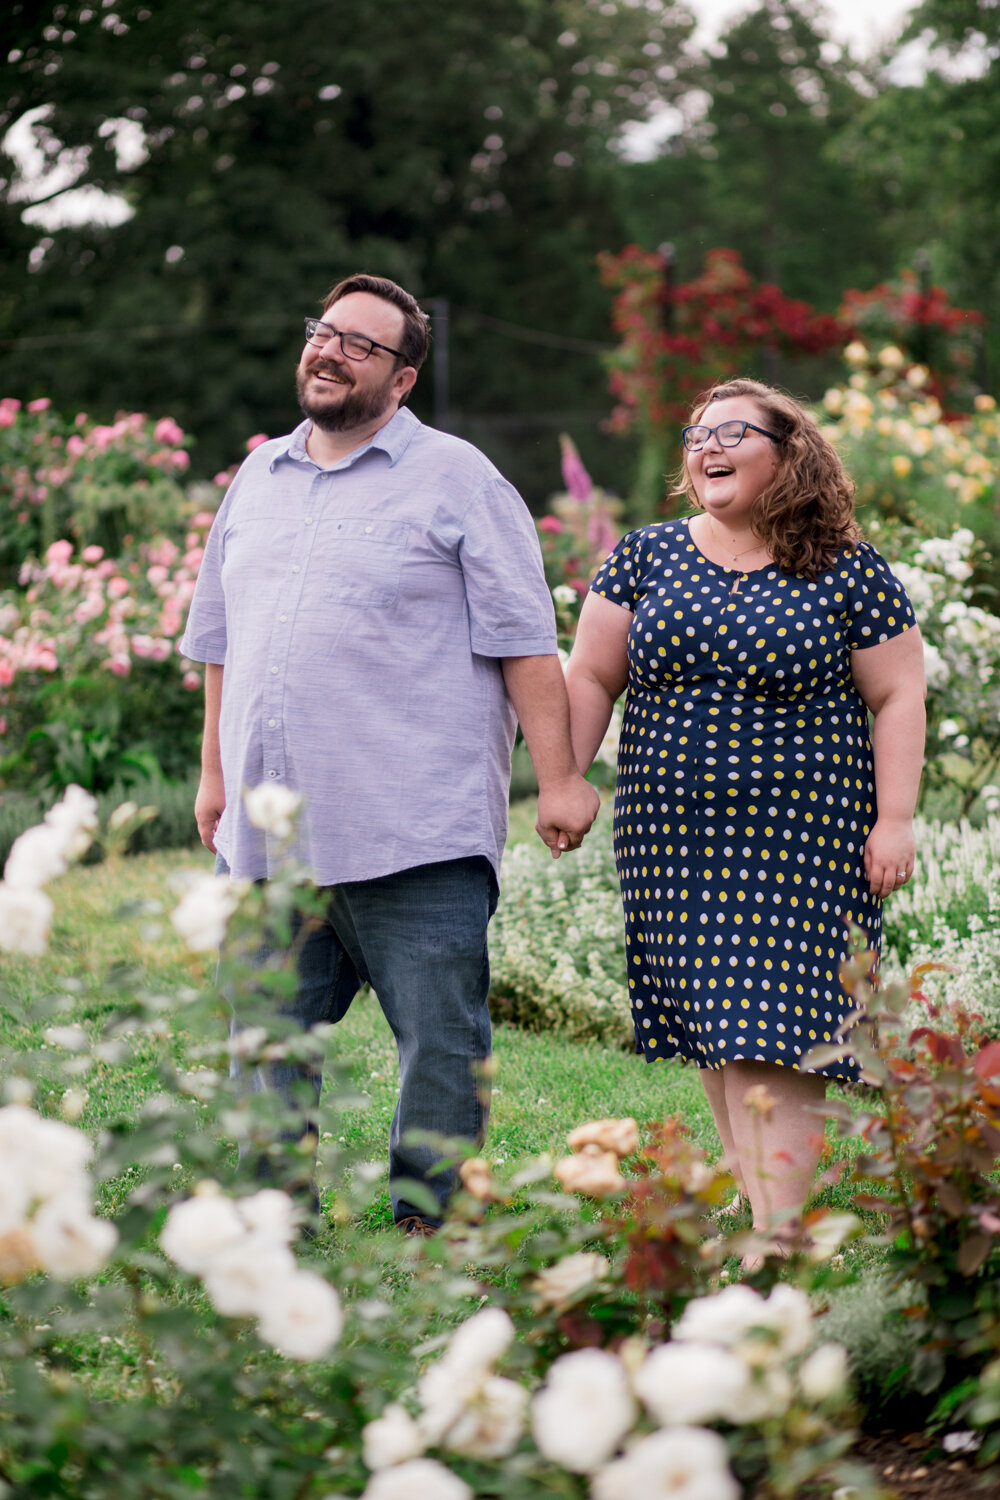 morris-arboretum-chestnut-hill-garden-engagement-session-philadelphia-wedding-photography-25.jpg